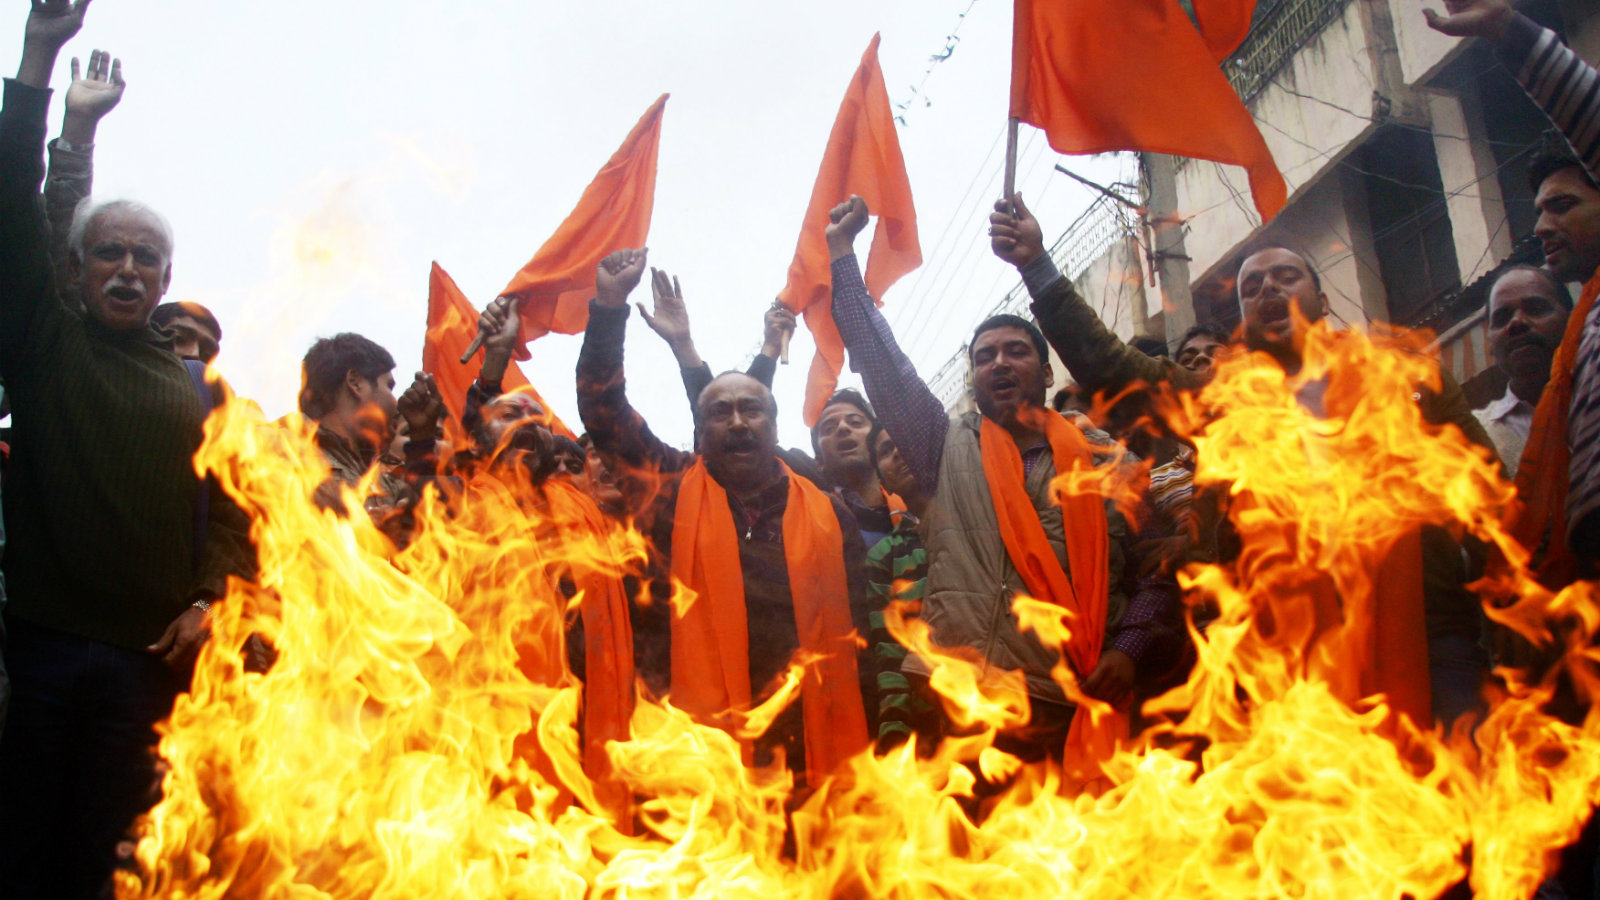 Hindu nationalist Shiv Sena activists burn an effigy representing Foreign Direct Investment (FDI) and shout slogans against the United Progressive Alliance (UPA) government during protest in the northern Indian city of Jammu, the winter capital of Kashmir on 01 December 2011. According to reports many political party and traders in India are observing a day-long strike in protest at the decision by the central government's decision to allow Foreign Direct Investment (FDI) in retail sector to global supermarket chains.